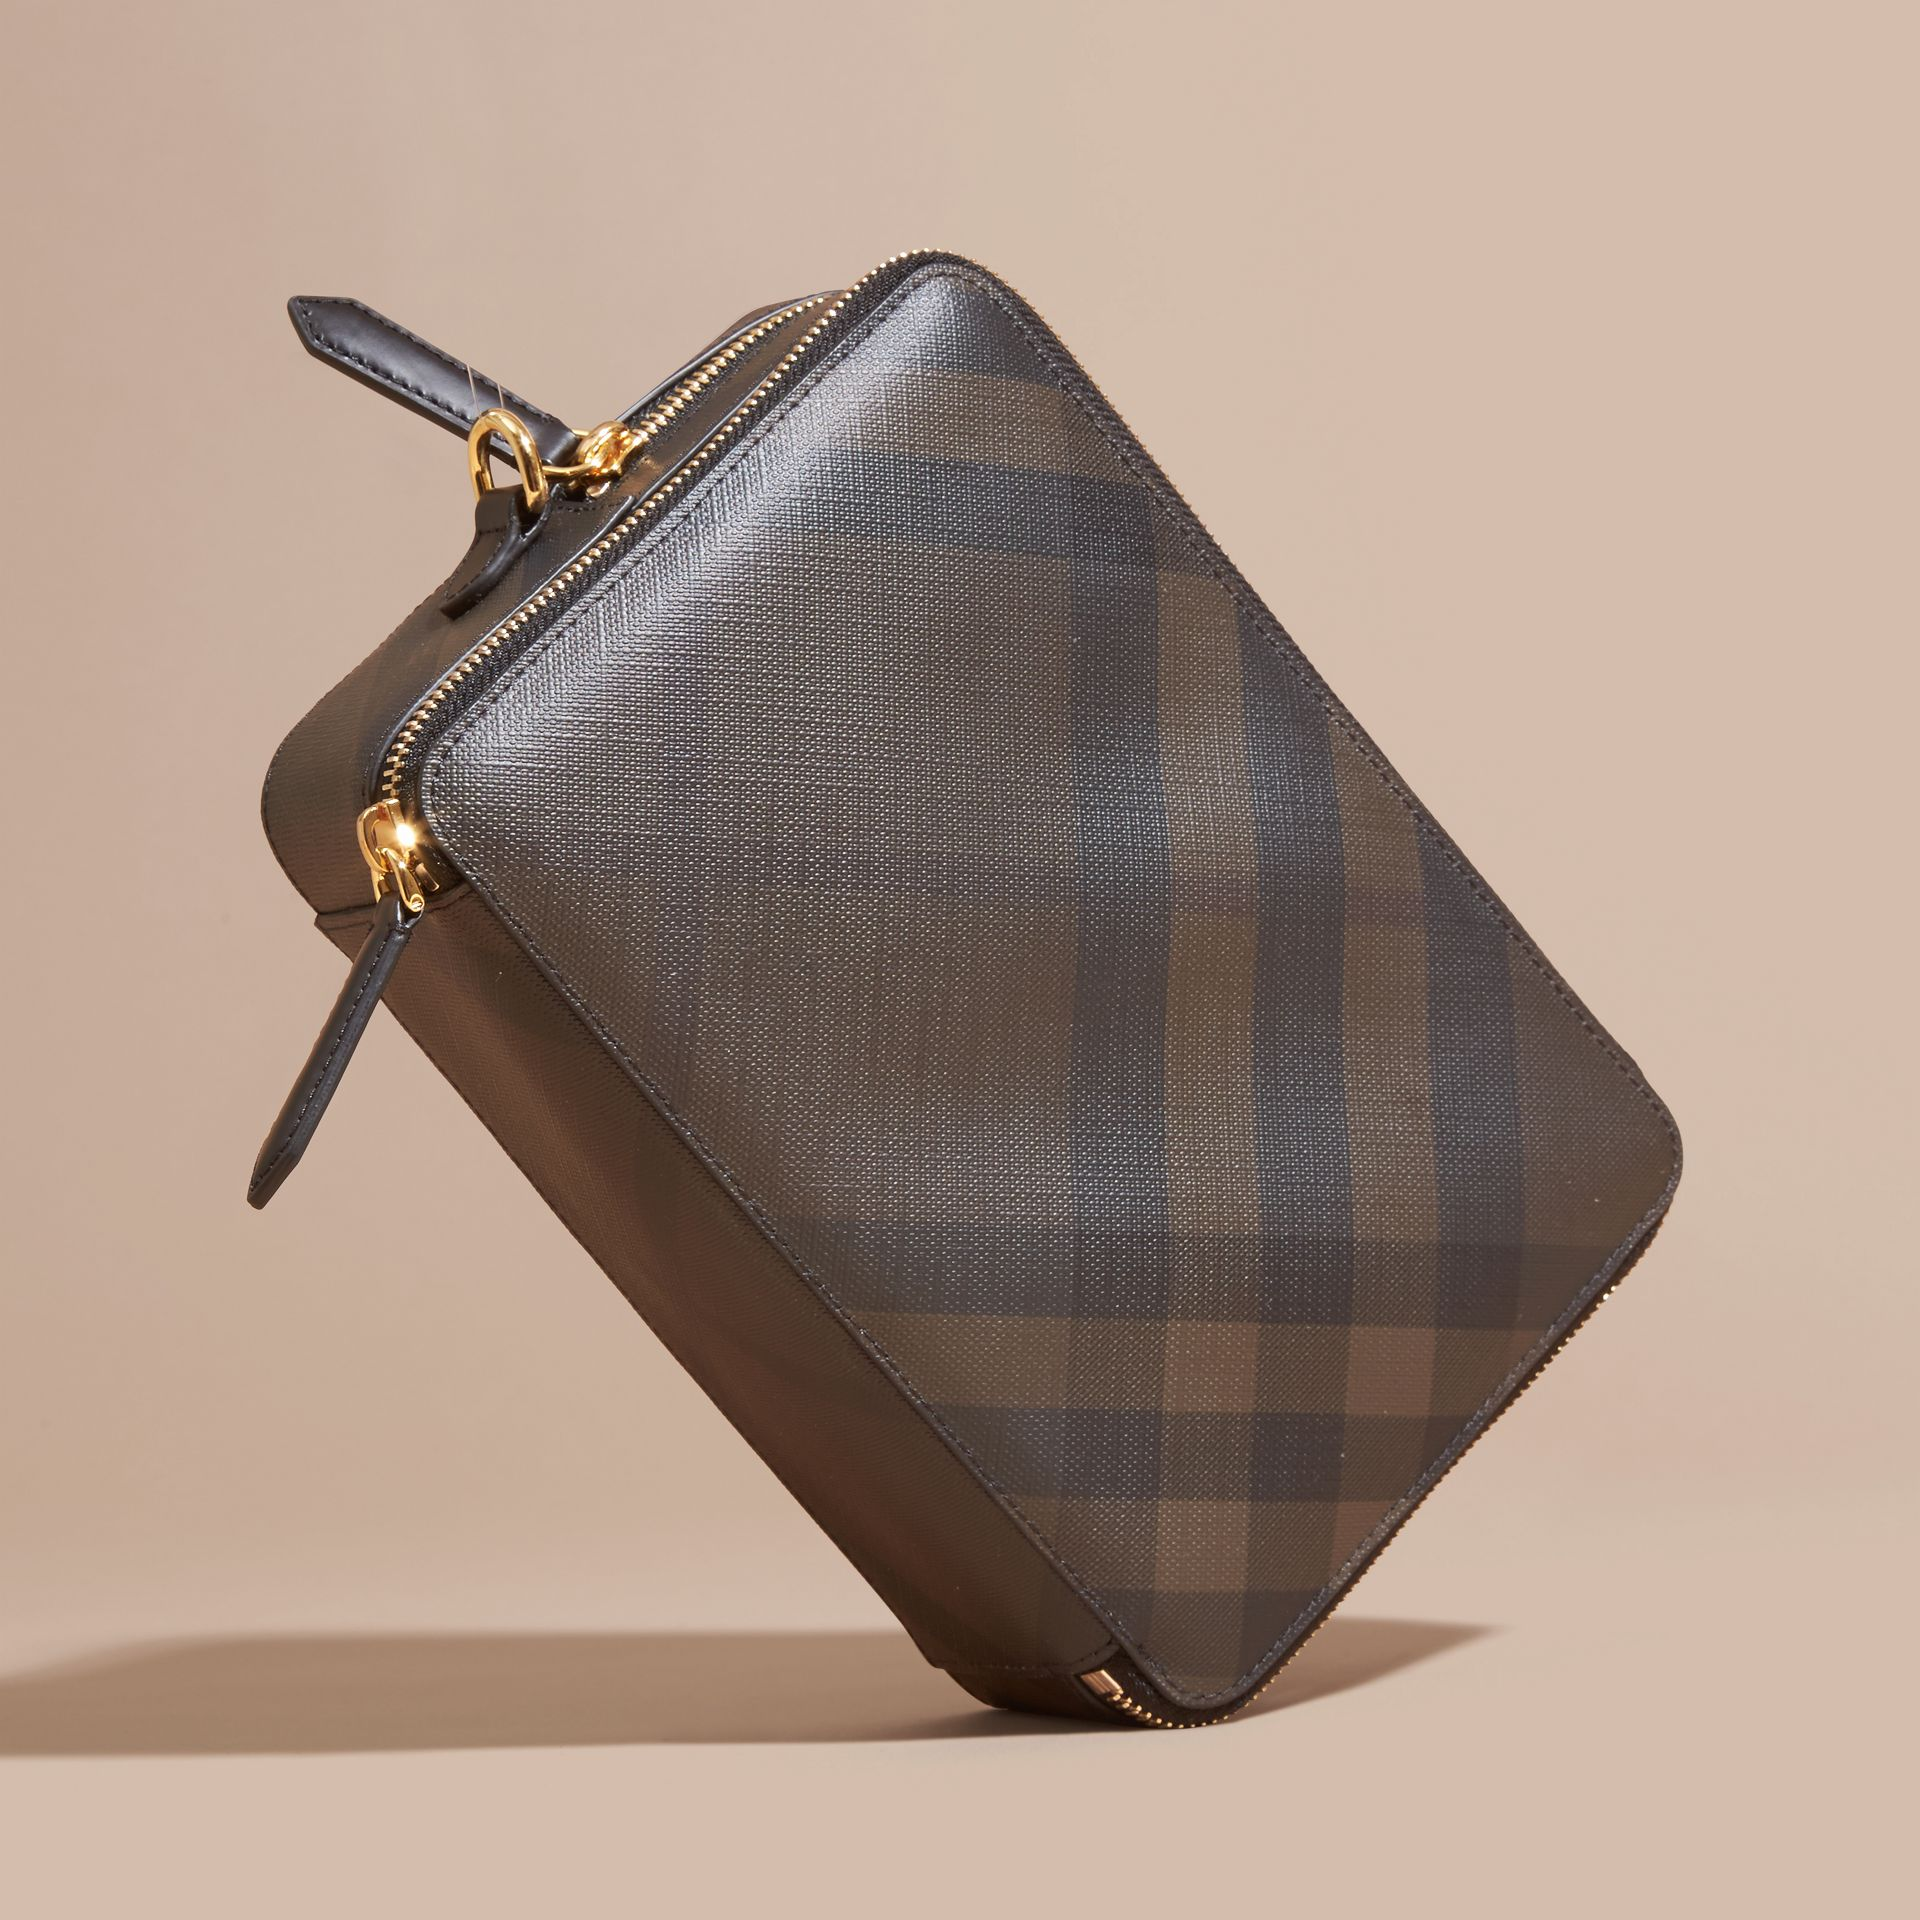 Leather-trimmed London Check Pouch in Chocolate/black - Men | Burberry Canada - gallery image 5